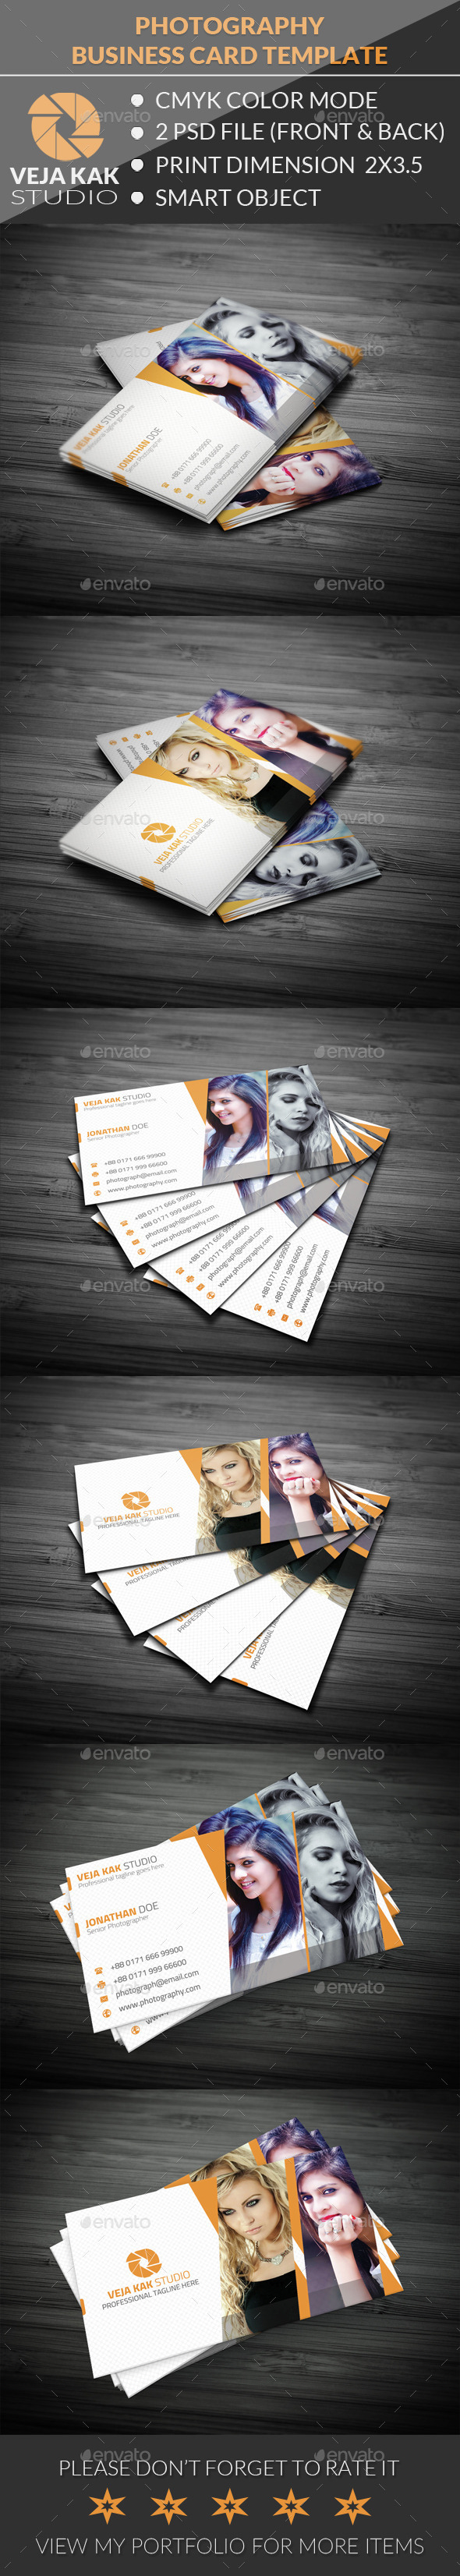 GraphicRiver Photography Business Card 11857255